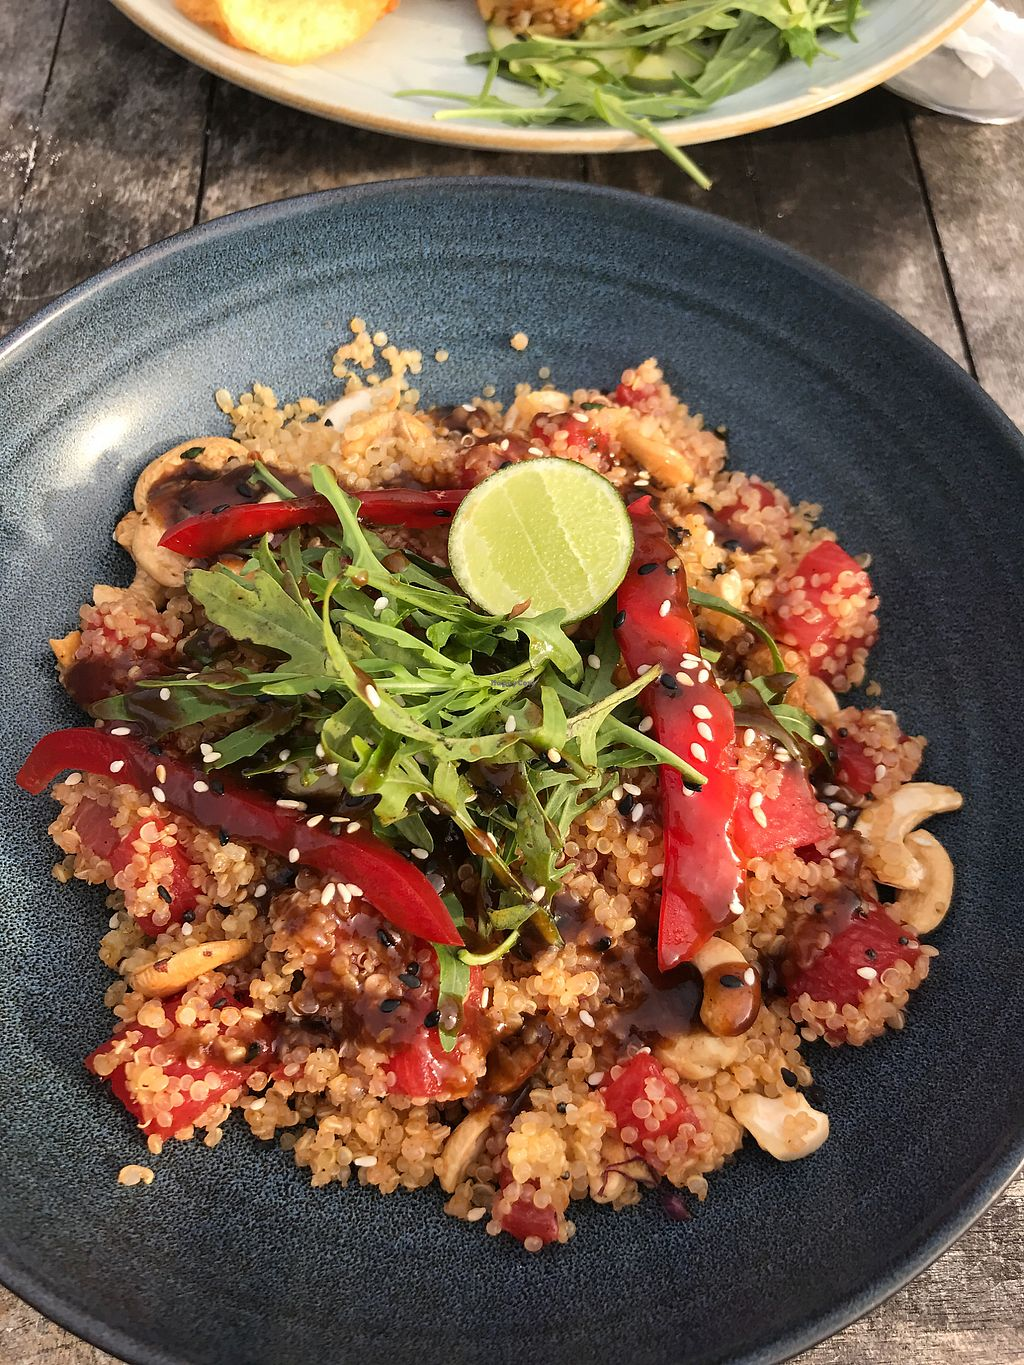 """Photo of Mowie's   by <a href=""""/members/profile/LolaNachtigall"""">LolaNachtigall</a> <br/>Quinoa Salad - vg & gf <br/> November 17, 2017  - <a href='/contact/abuse/image/76717/326375'>Report</a>"""